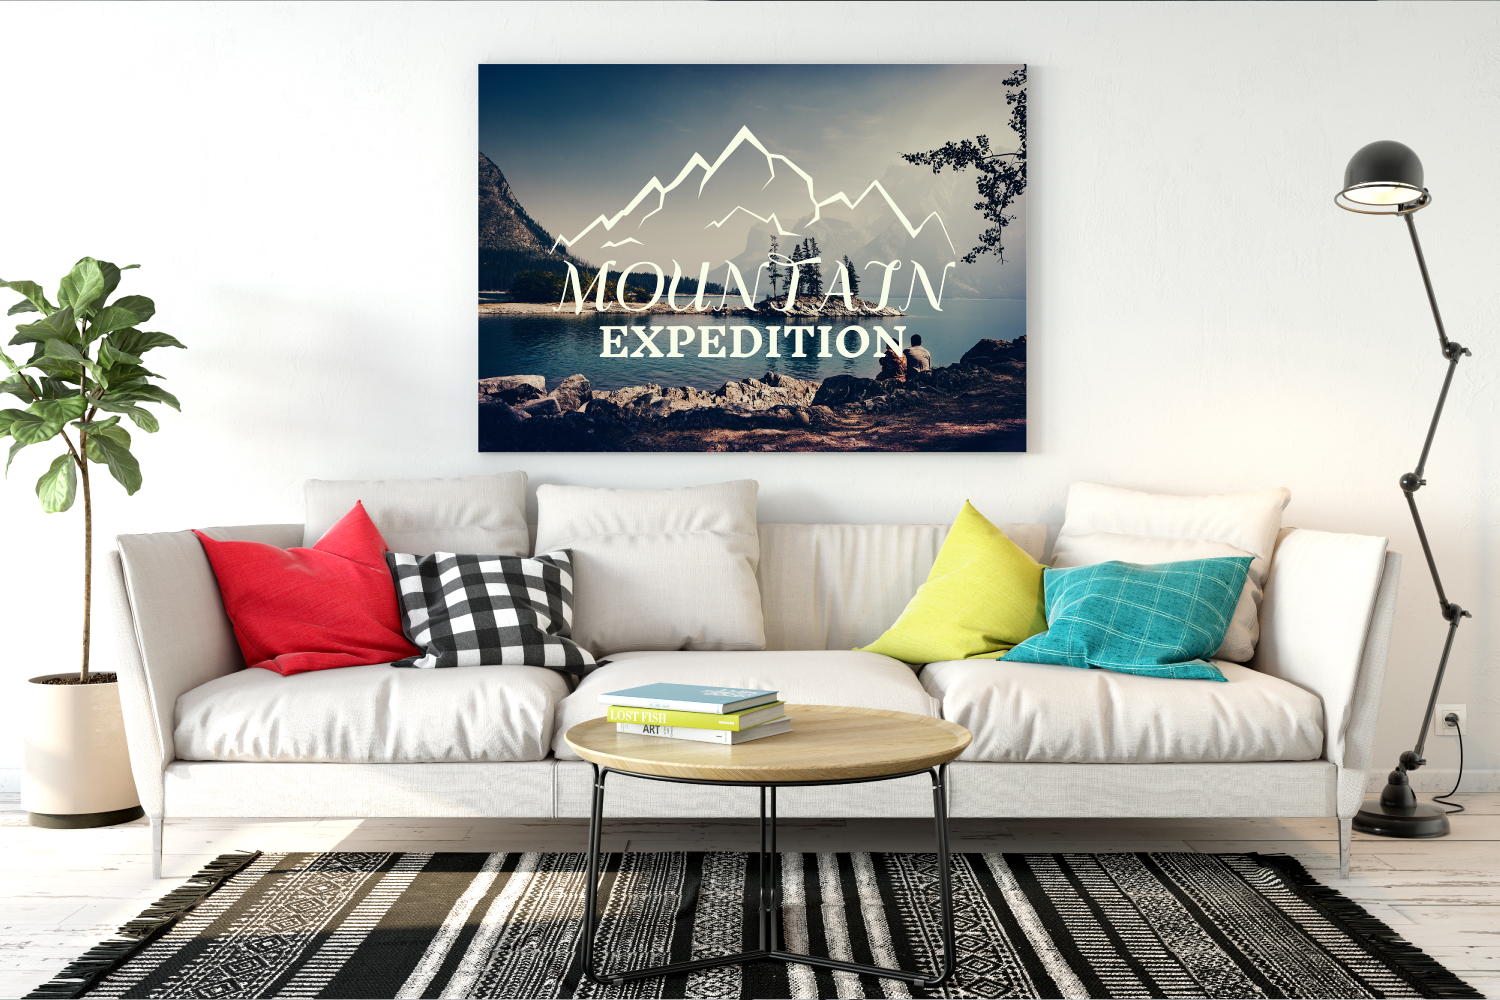 Mountain Expedition Logo Template, Retro Camp SVG File example image 2